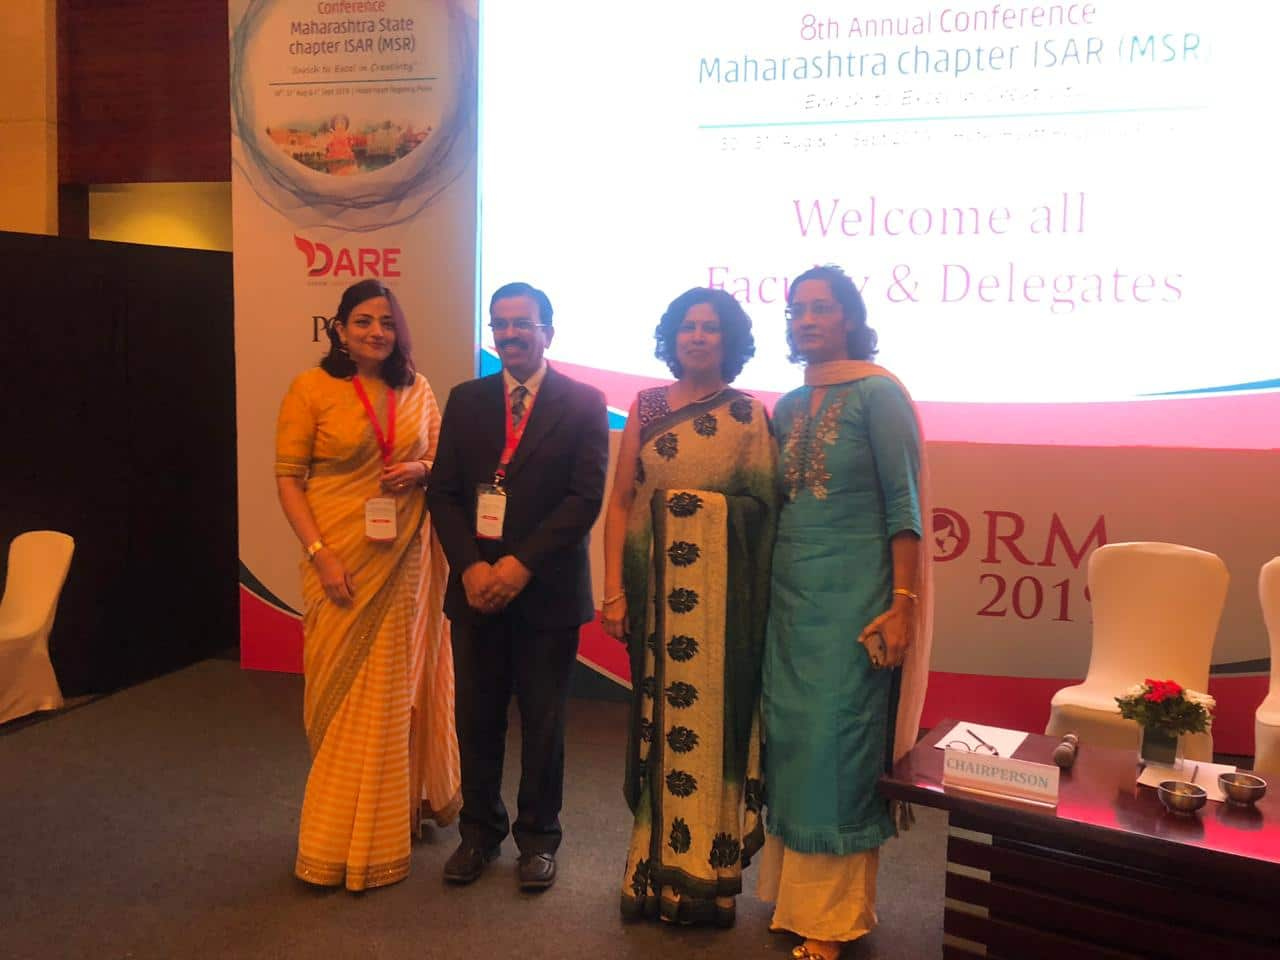 Dr. Sumita Sofat Has Been Invited As FACULTY For MACORM 2019 – 8th Annual Conference Maharastra Chapter ISAR (MSR)